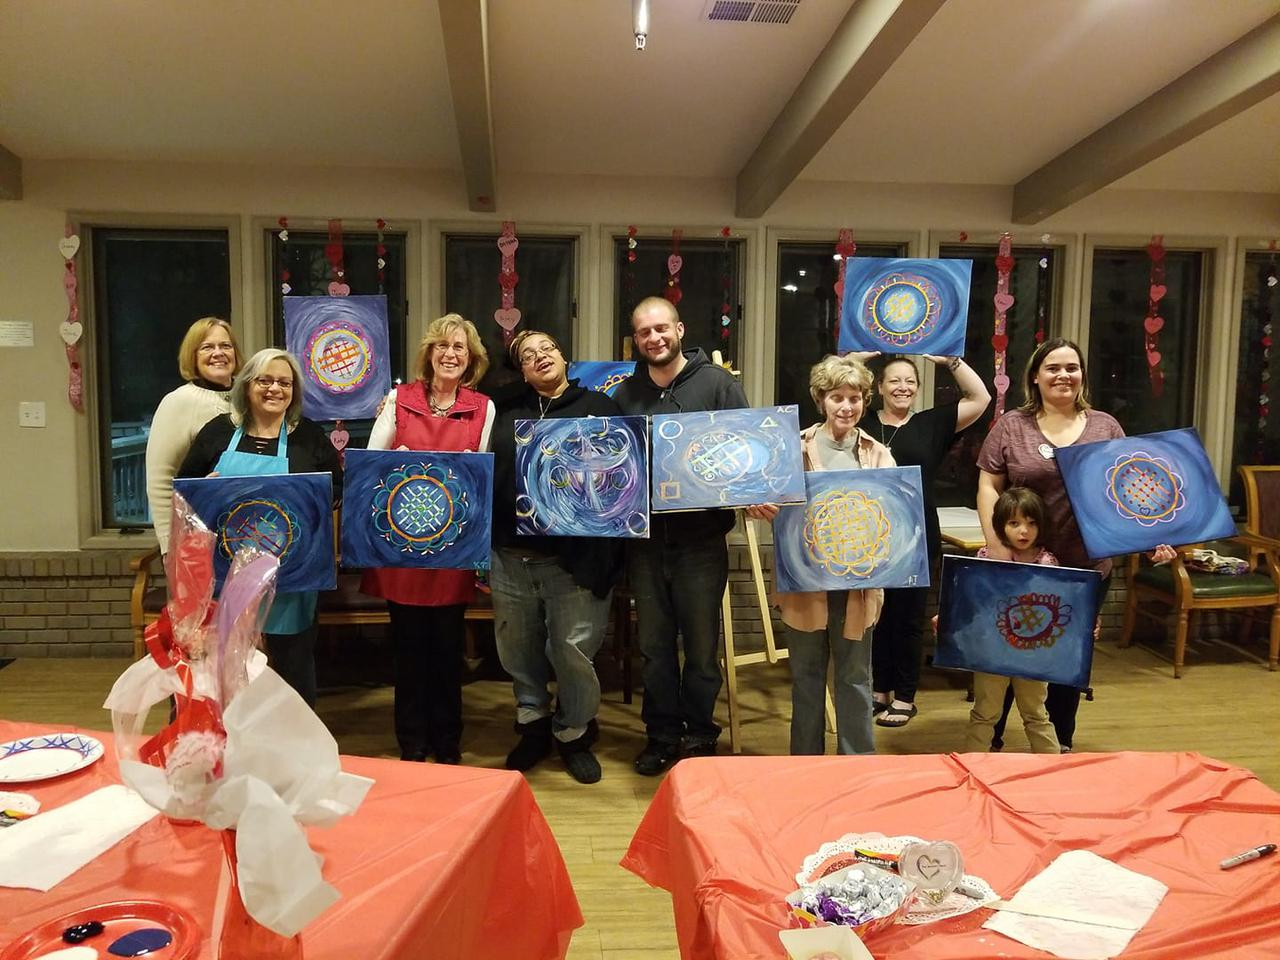 paint night fundraiser.jpg